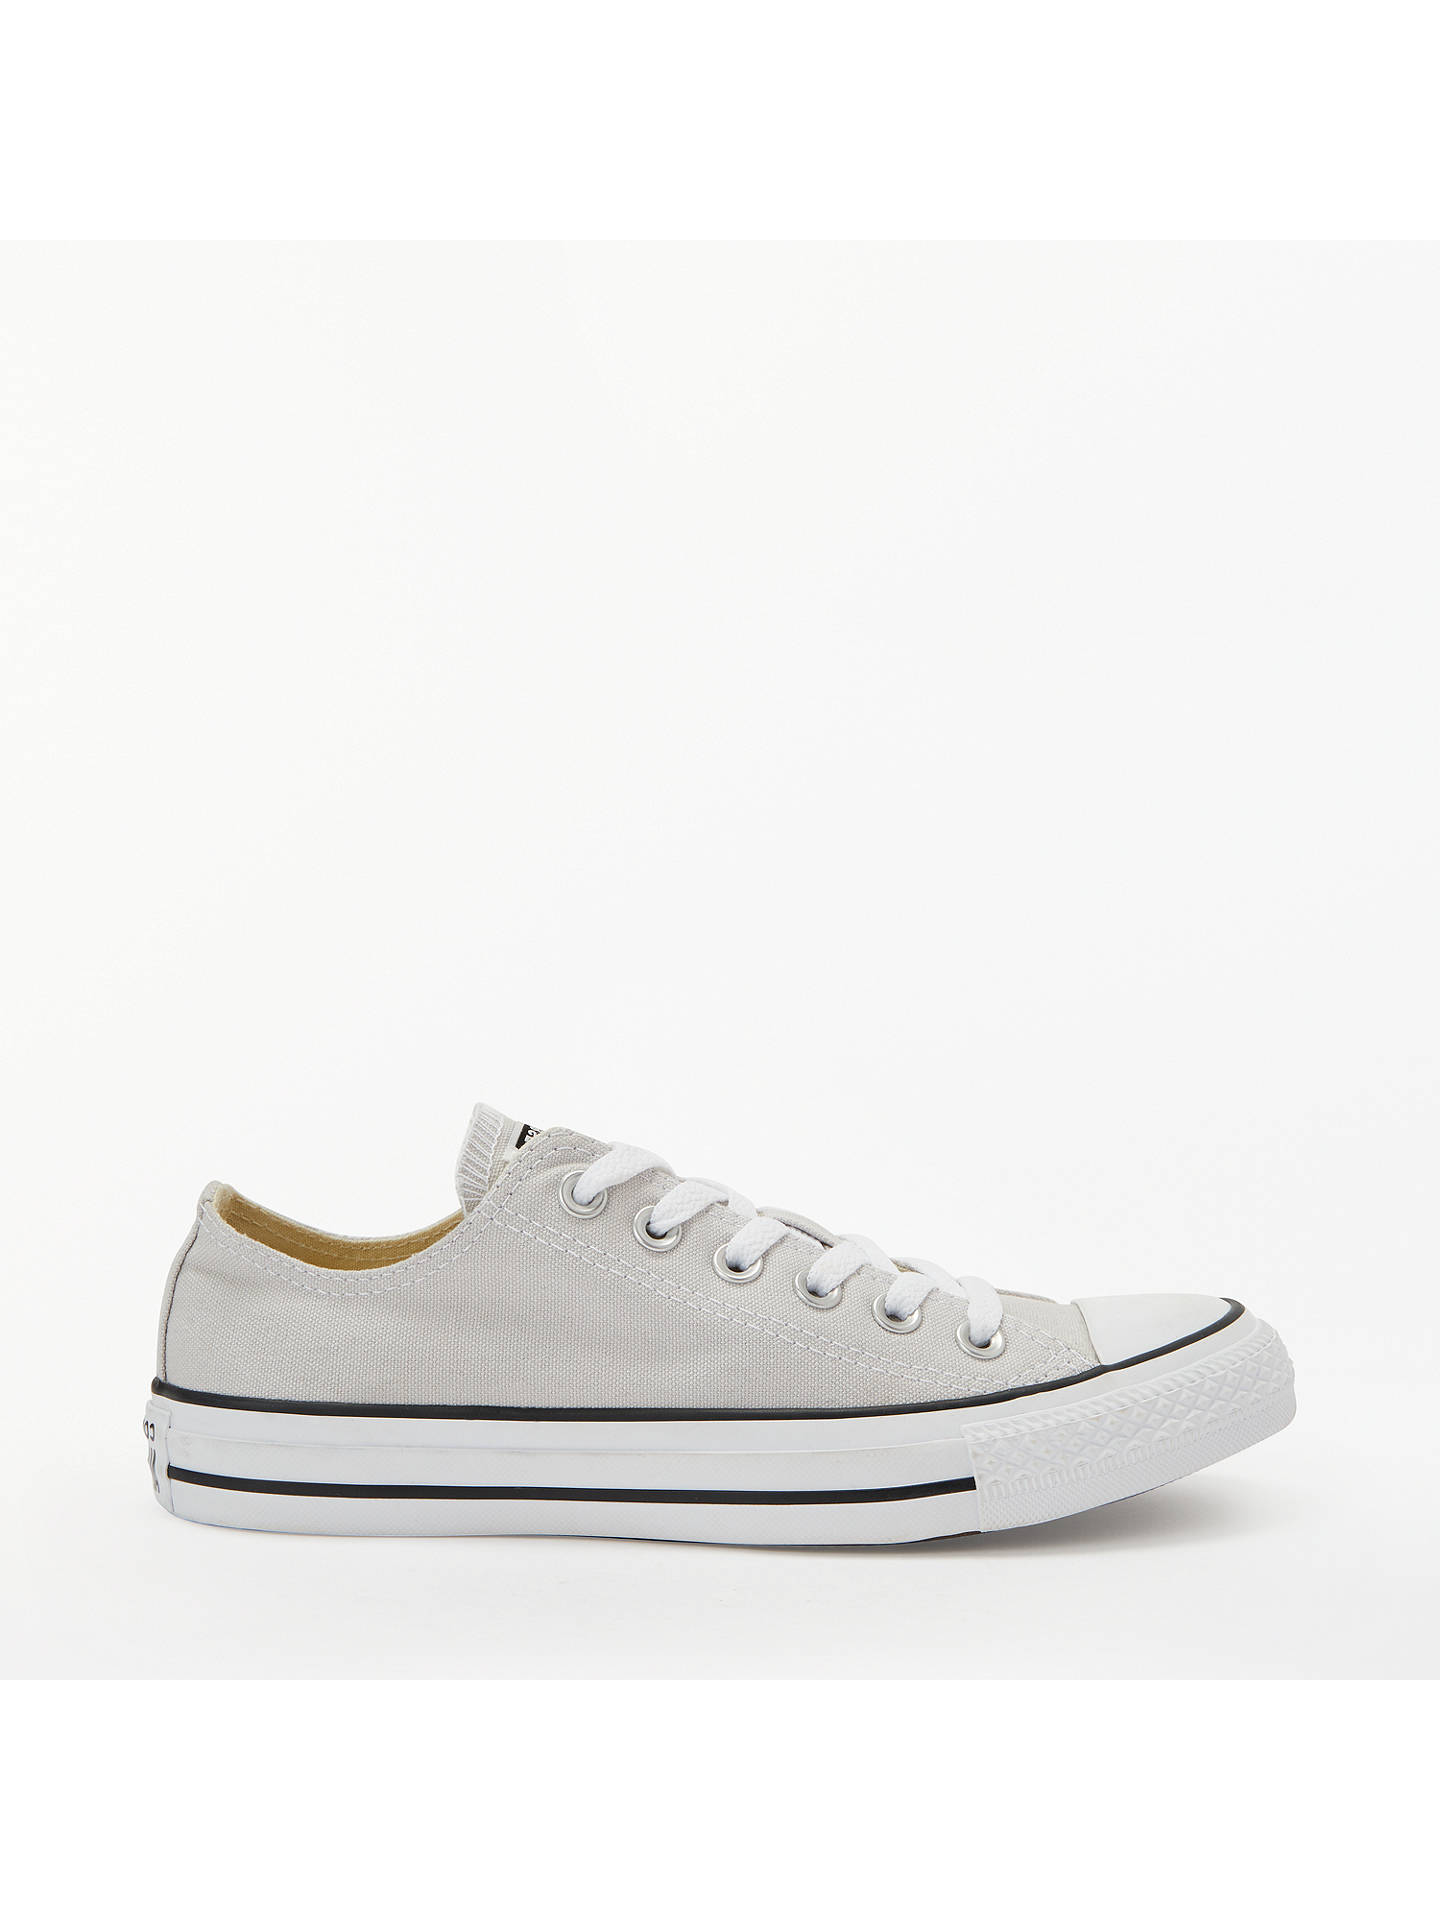 34e72b7aed63 Converse Chuck Taylor All Star Women s Canvas Ox Low-Top Trainers ...